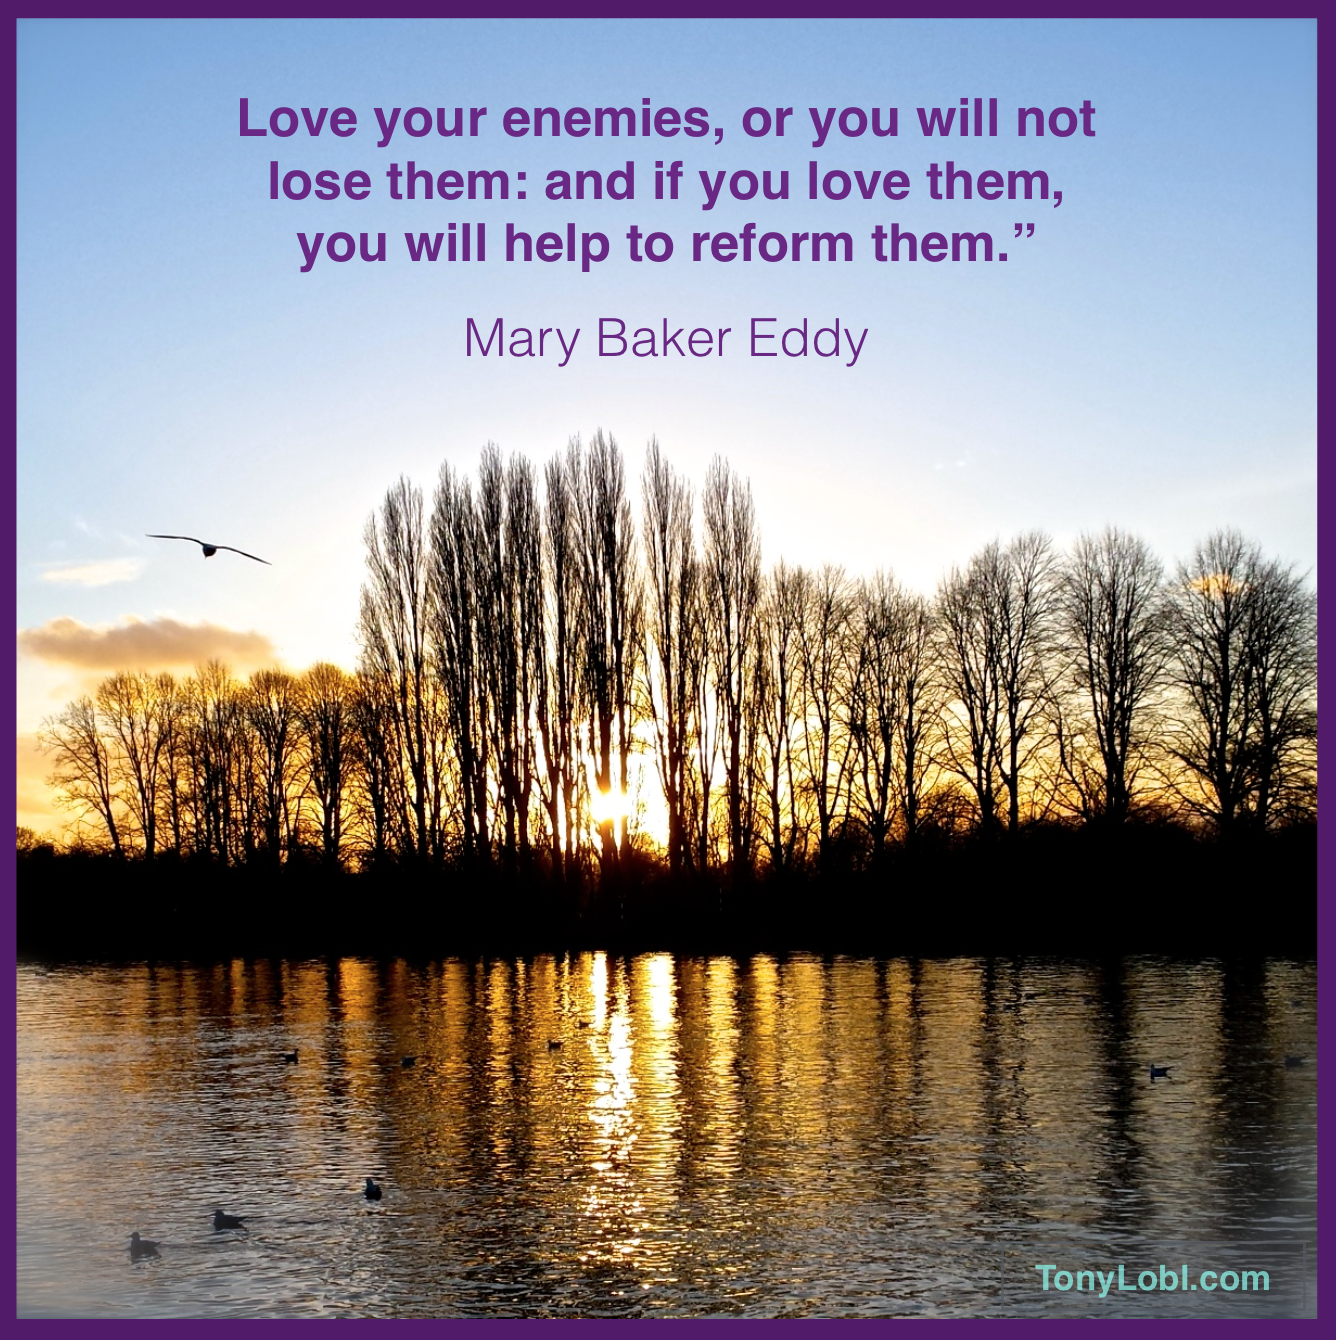 loving your enemies 508 quotes have been tagged as enemies: oscar wilde: 'always forgive your enemies nothing annoys them so much', abraham lincoln: 'do i not destroy my e.